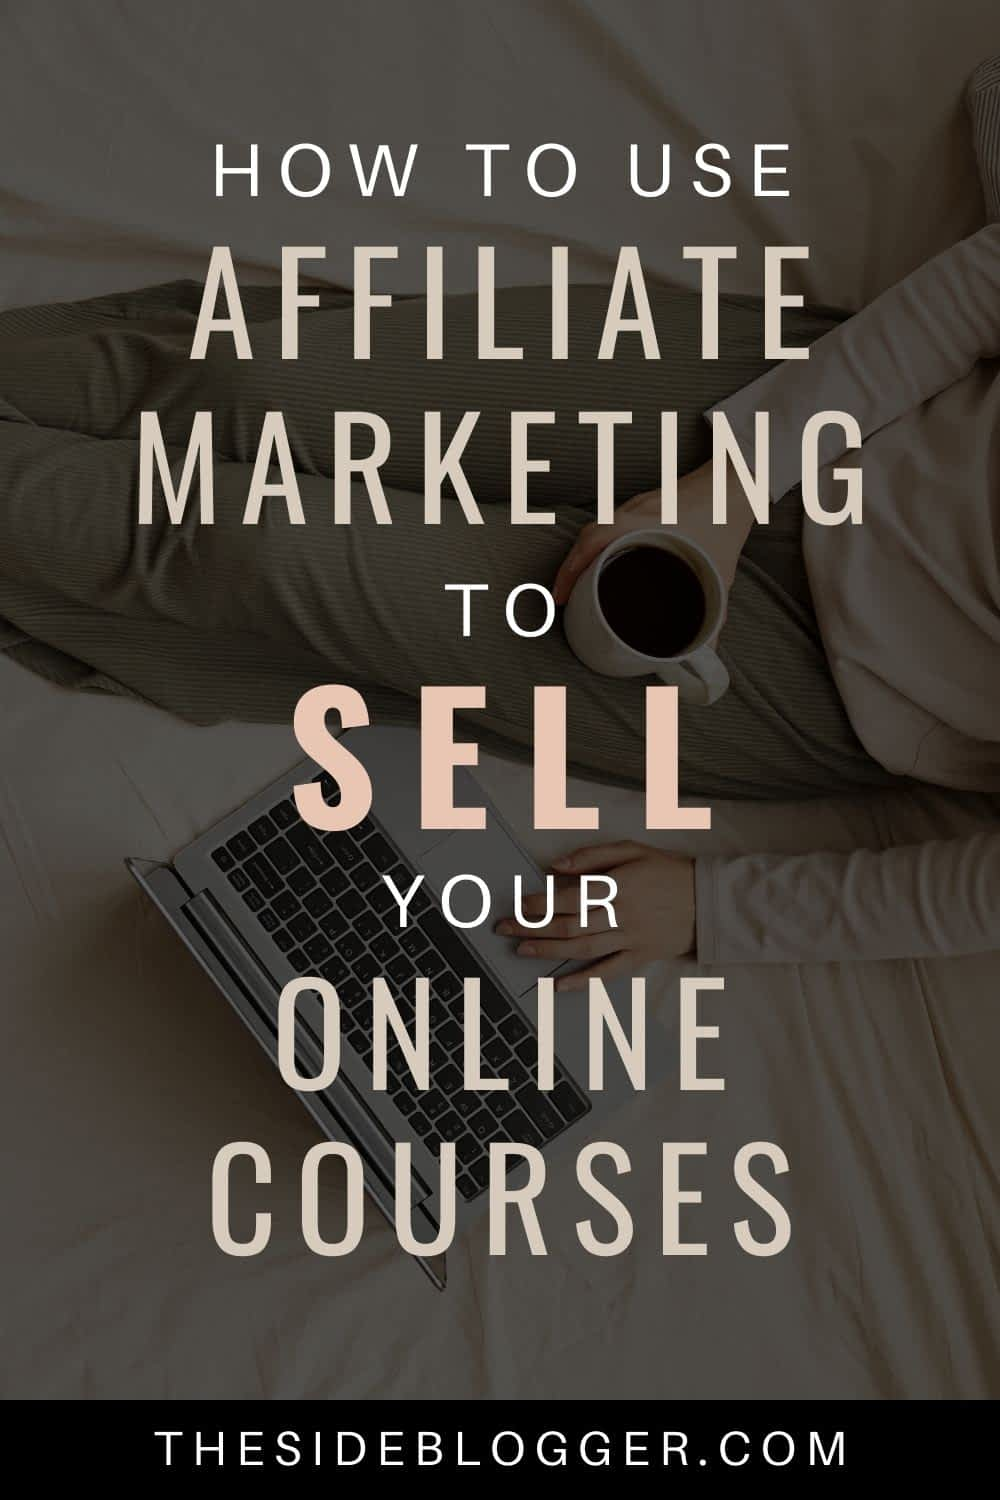 How to use affiliate marketers to sell your online courses